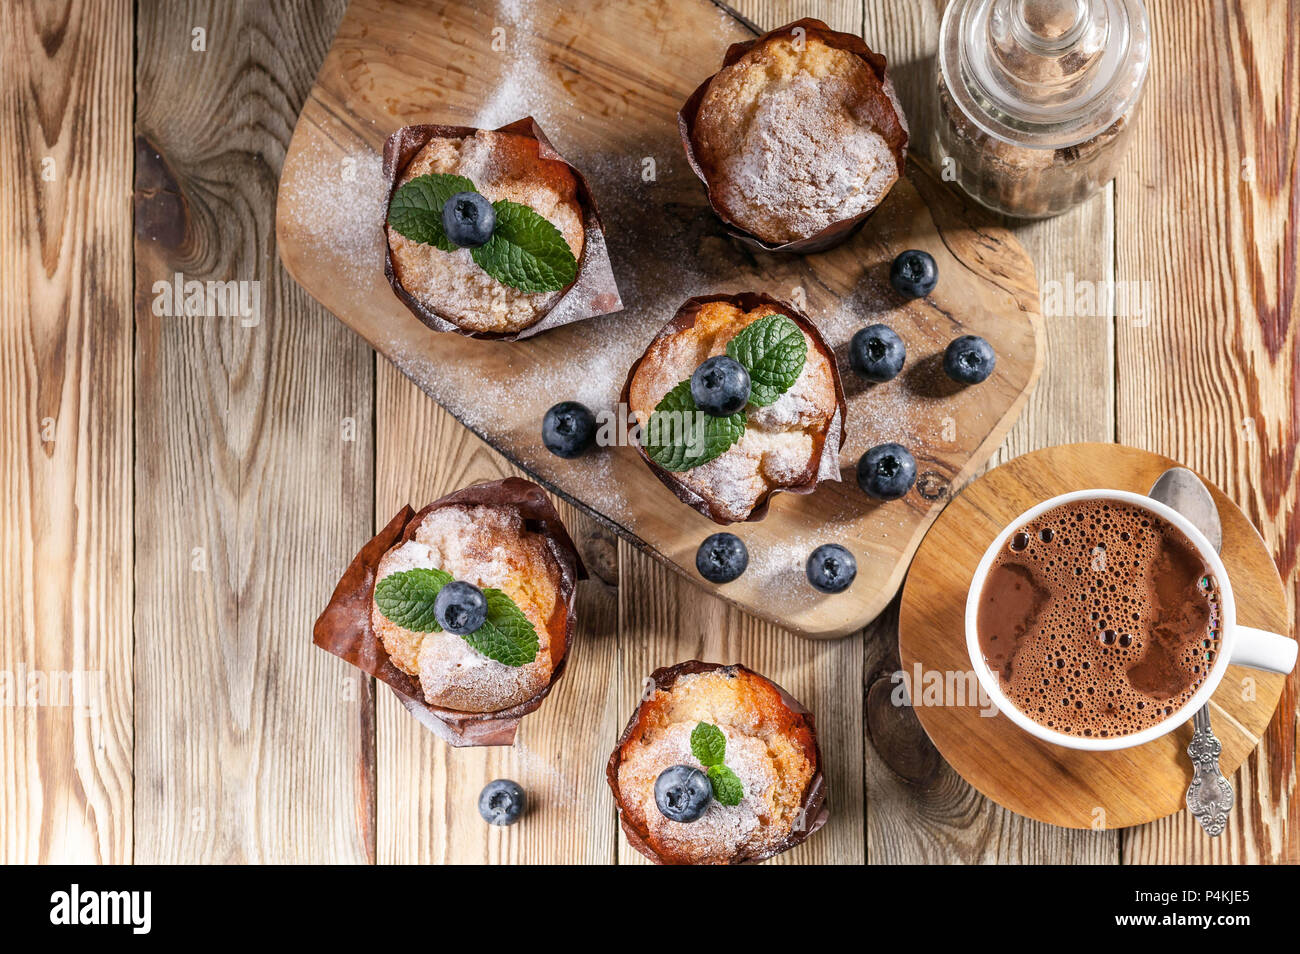 Muffins with blueberries and a cup of hot chocolate on a wooden background. homemade baking. Top view - Stock Image